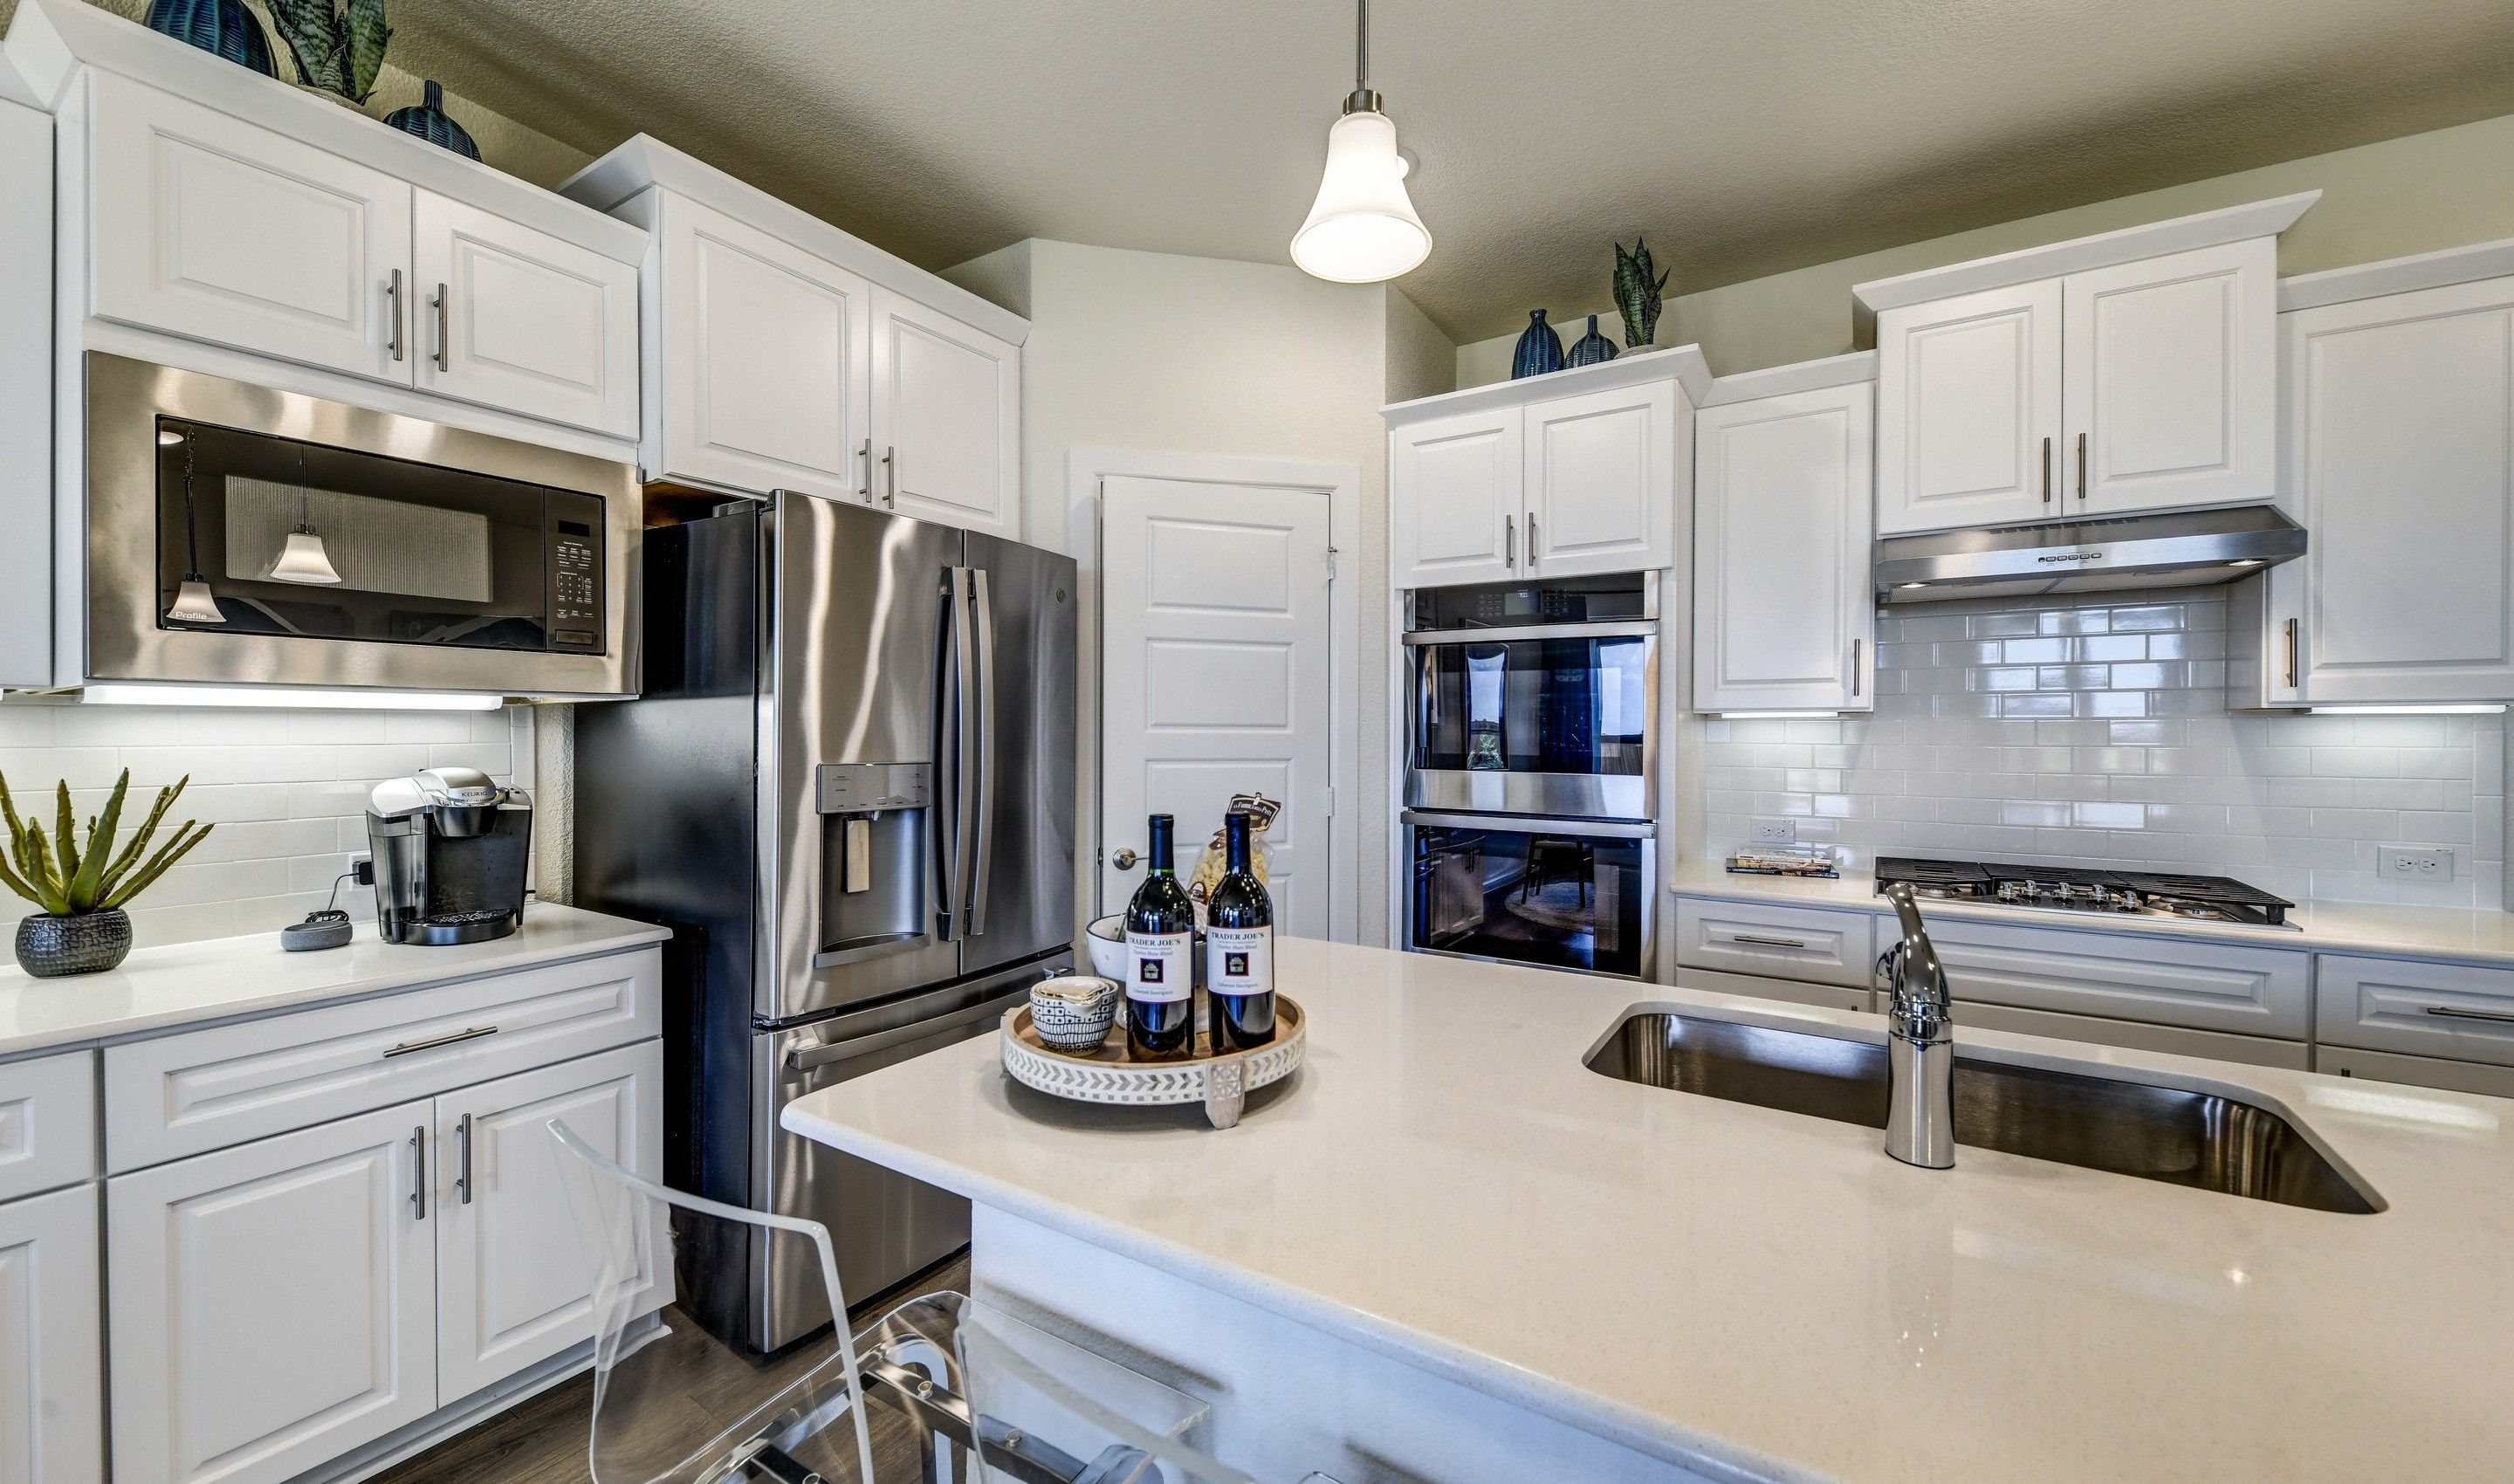 Kitchen featured in the Rockford II By K. Hovnanian® Homes in Dallas, TX